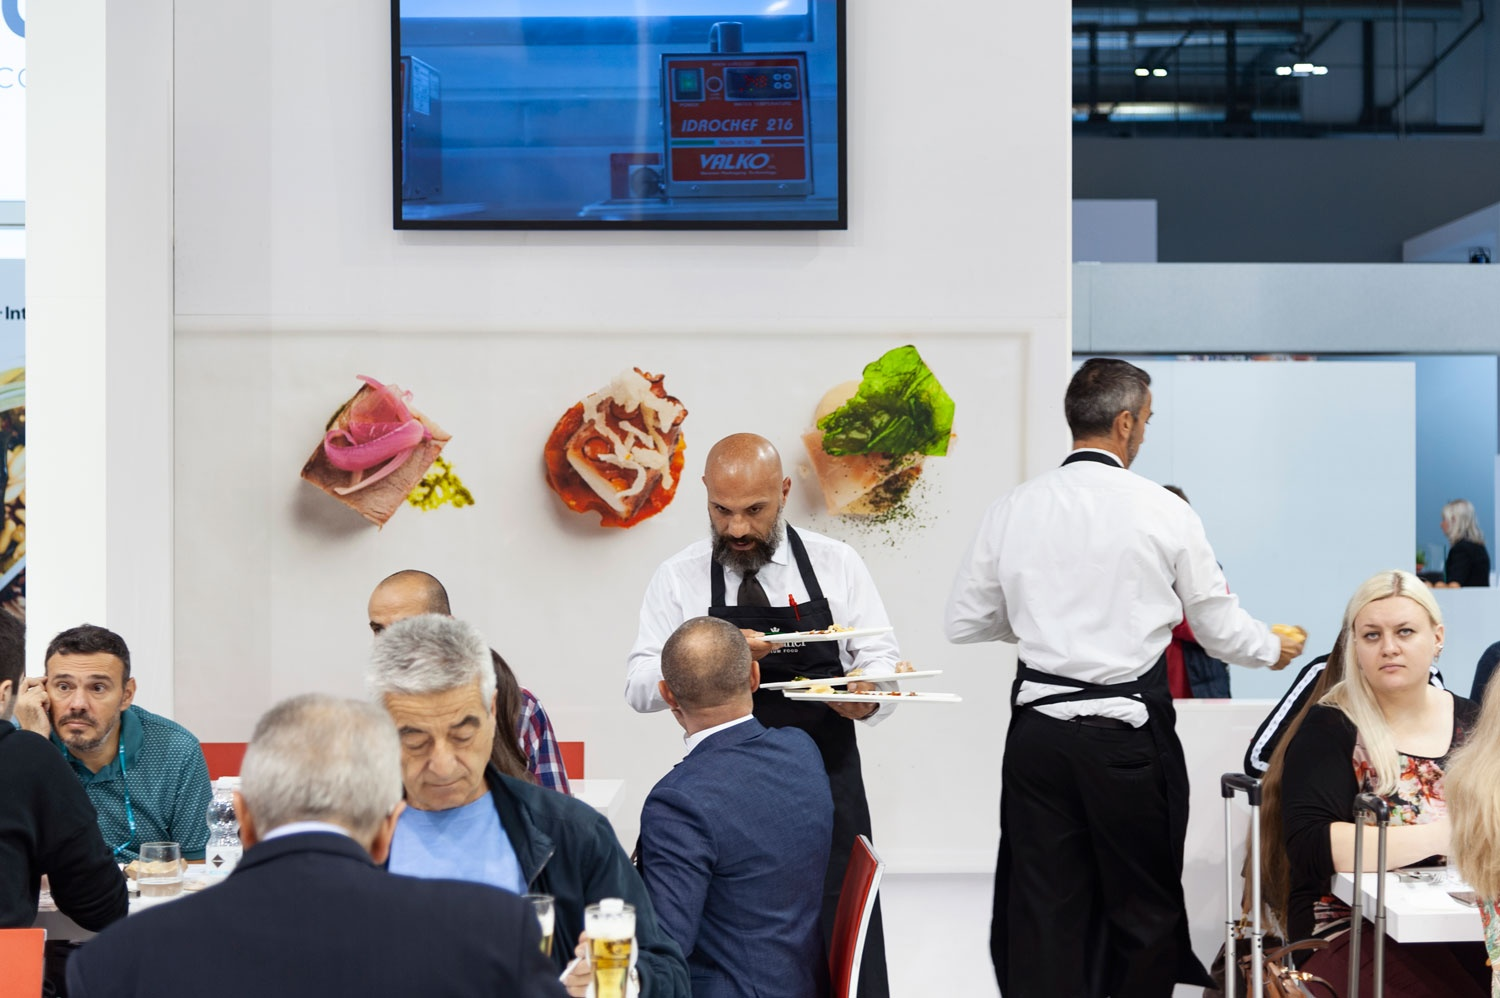 HOST 2019: thanks